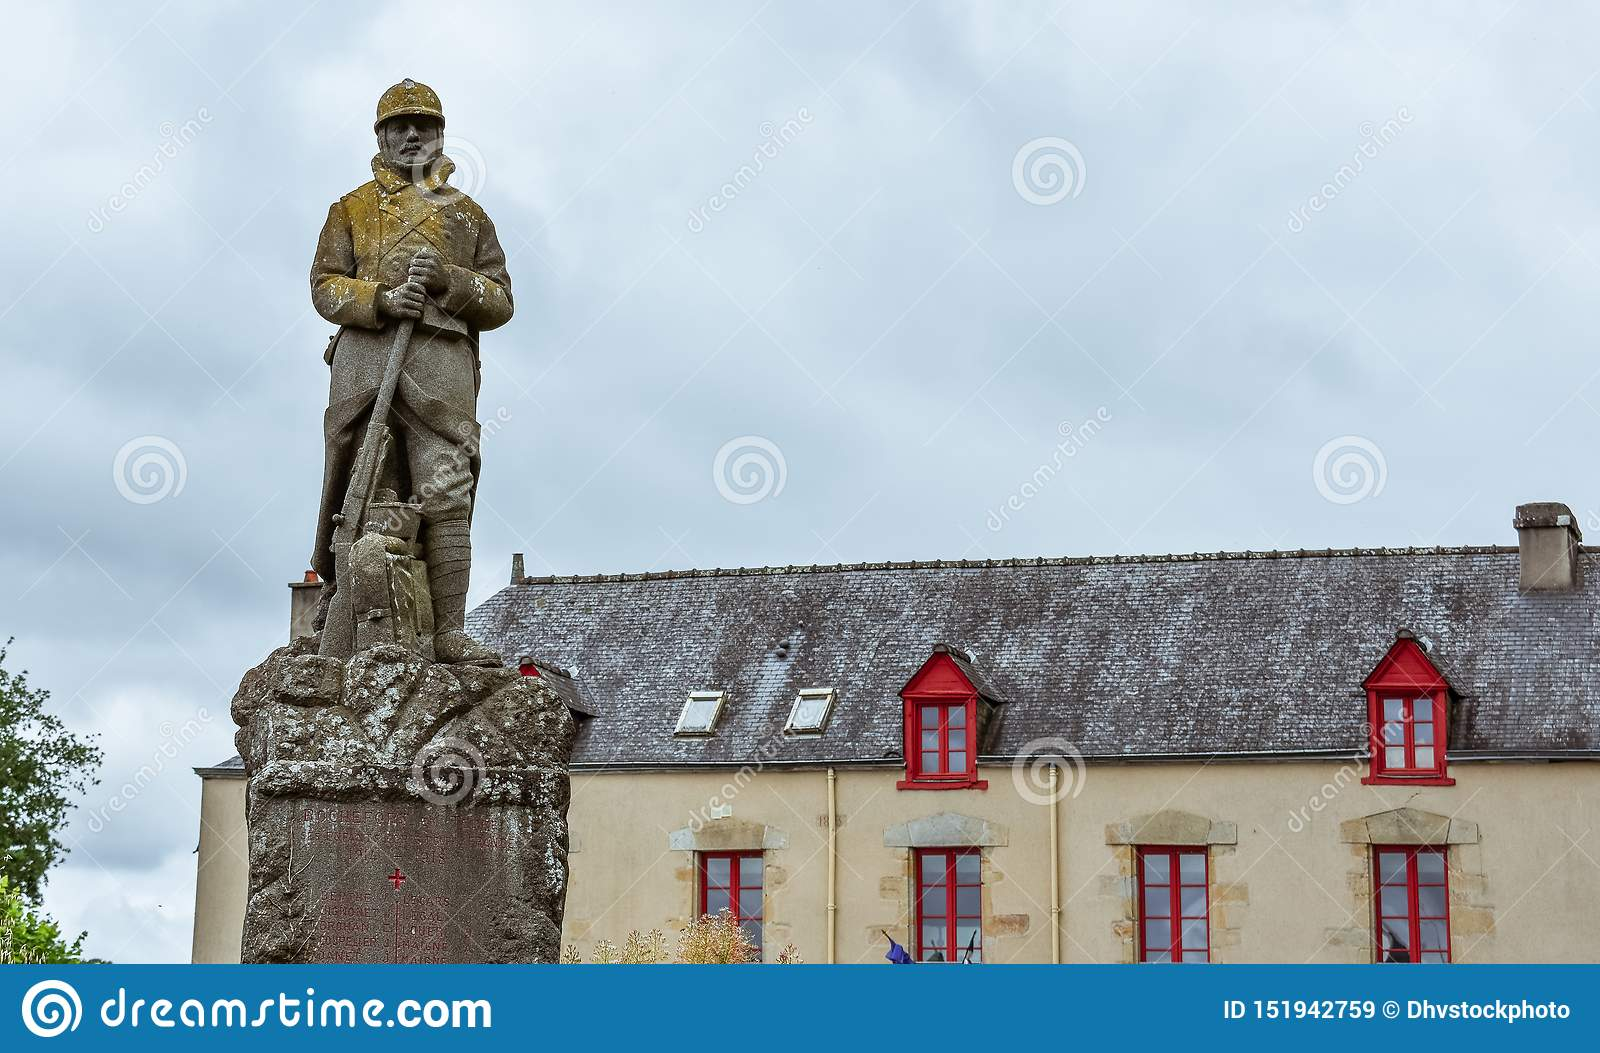 Antique house of the French Brittany and military statue